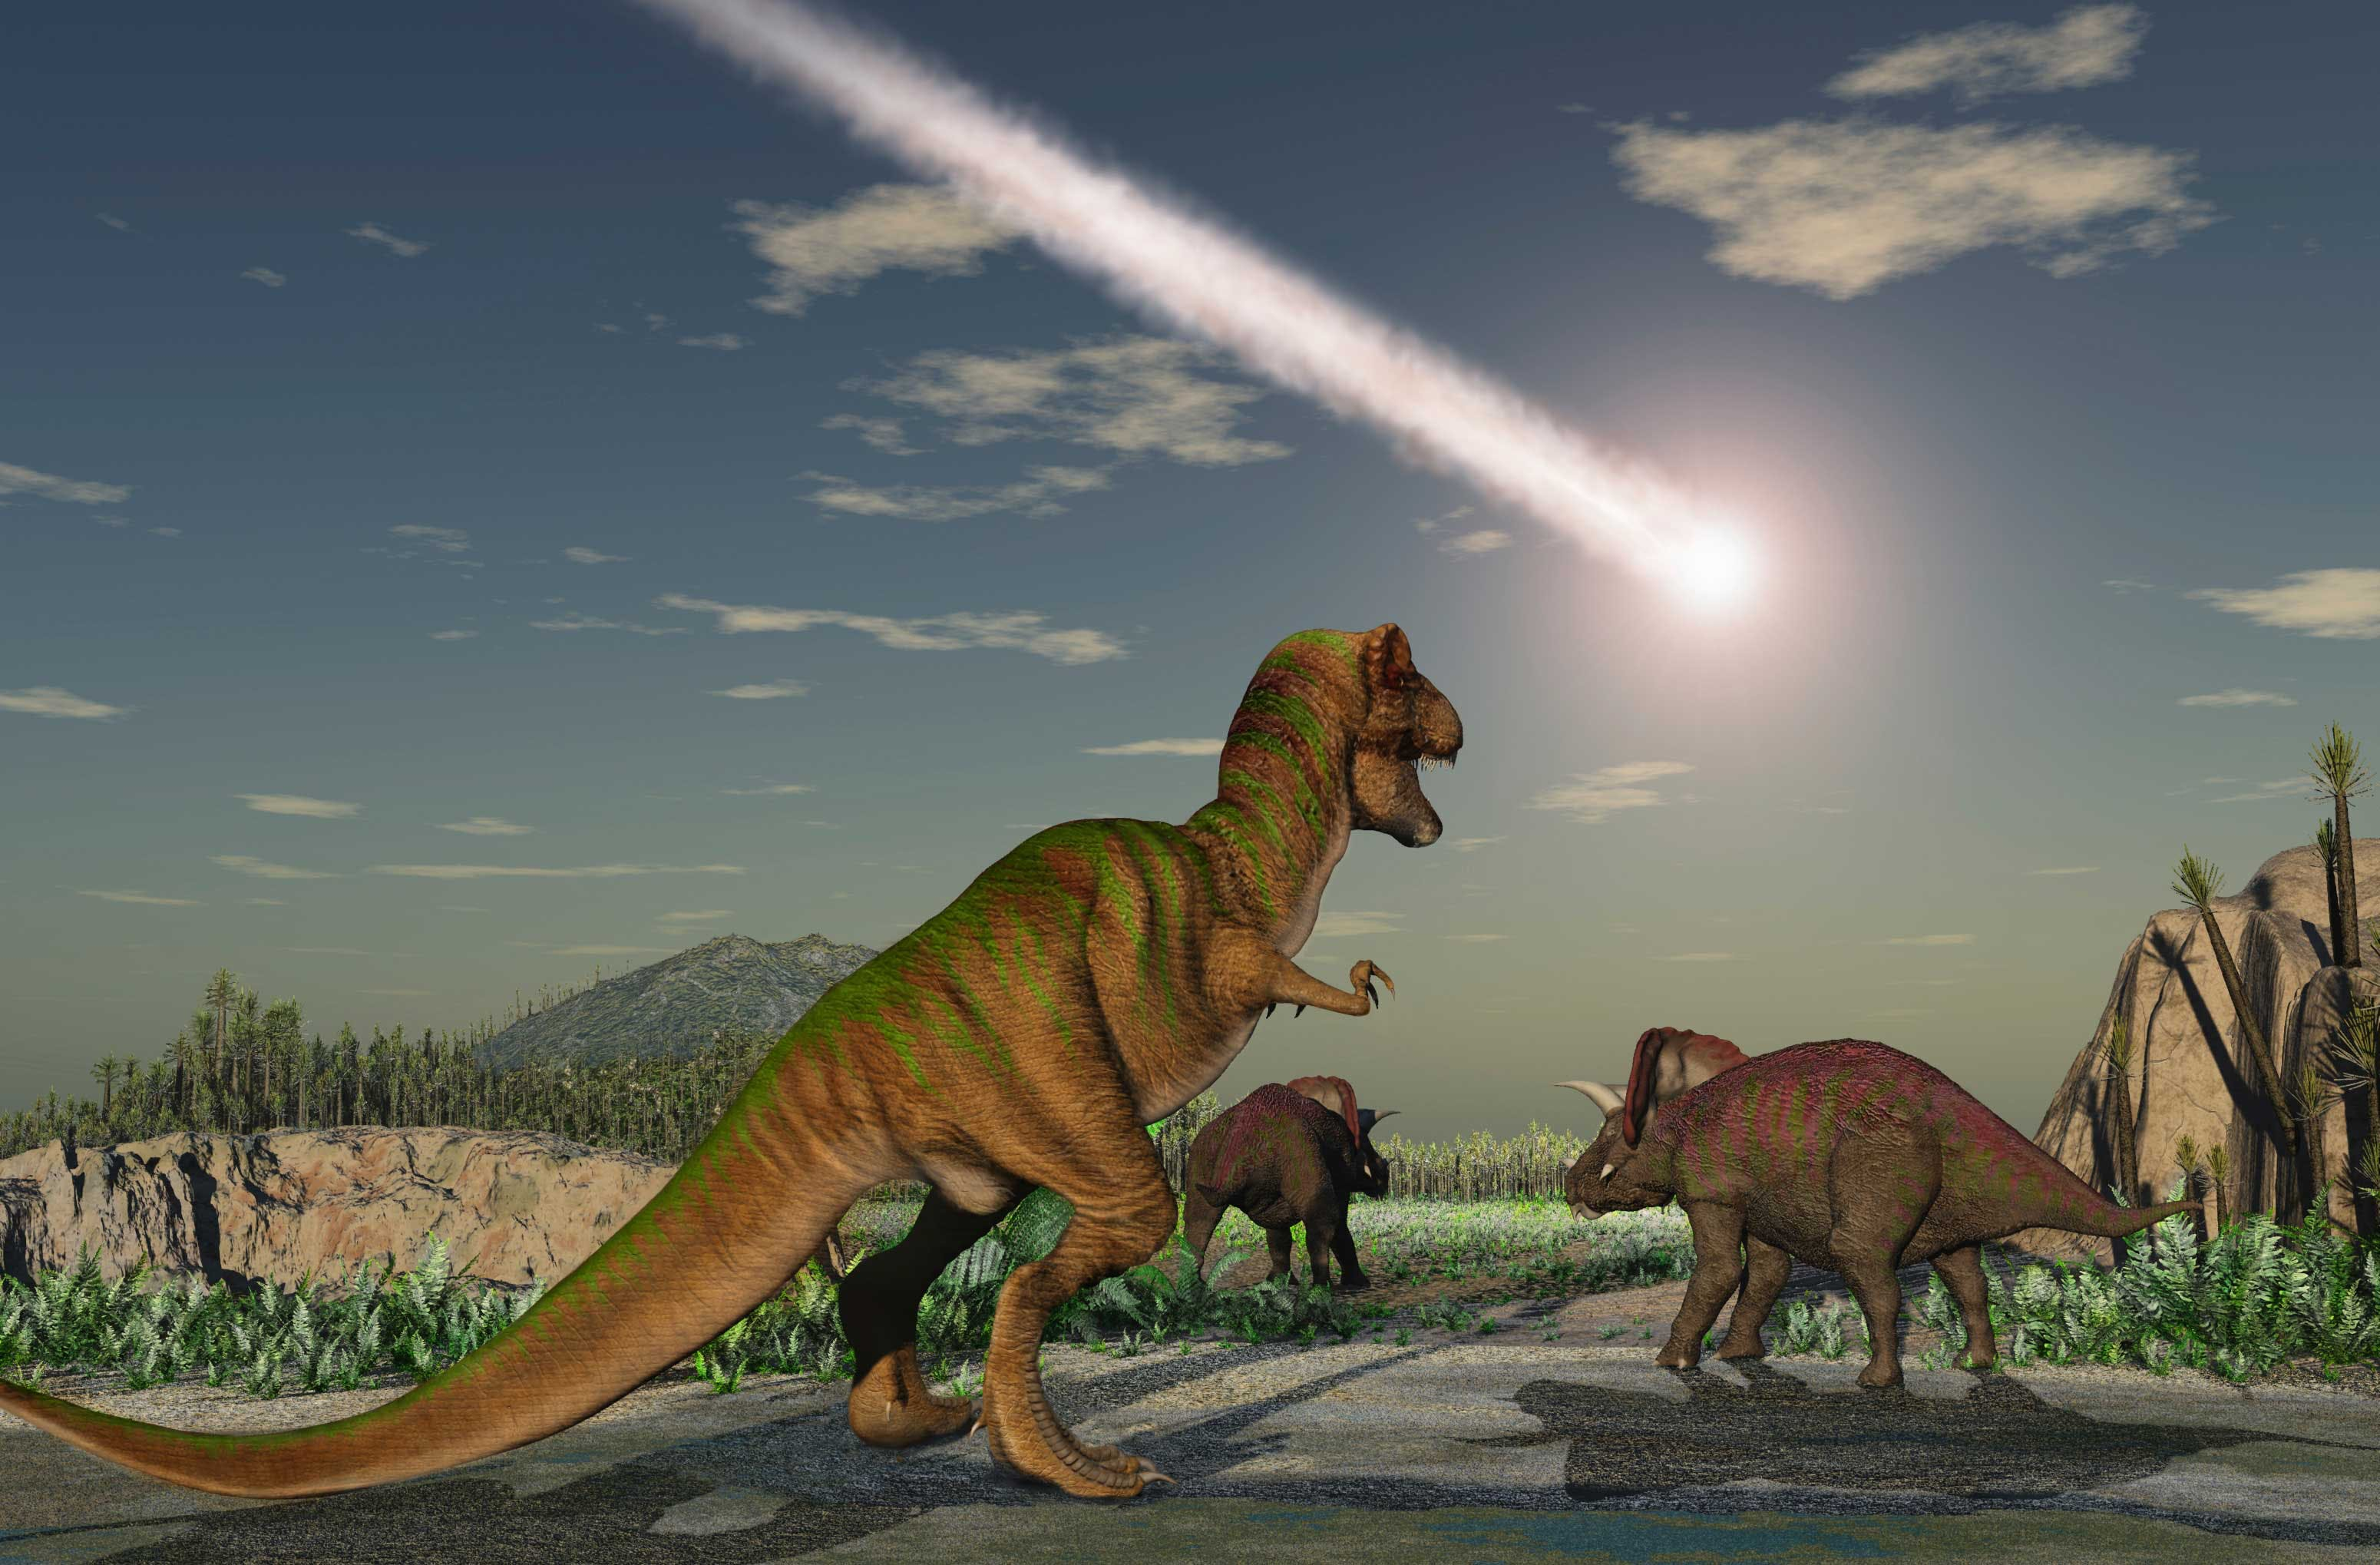 180 Dinosaurs Can't Be Wrong, Can They? – Call for BMJ to Retract Criticism of Dietary Guidelines